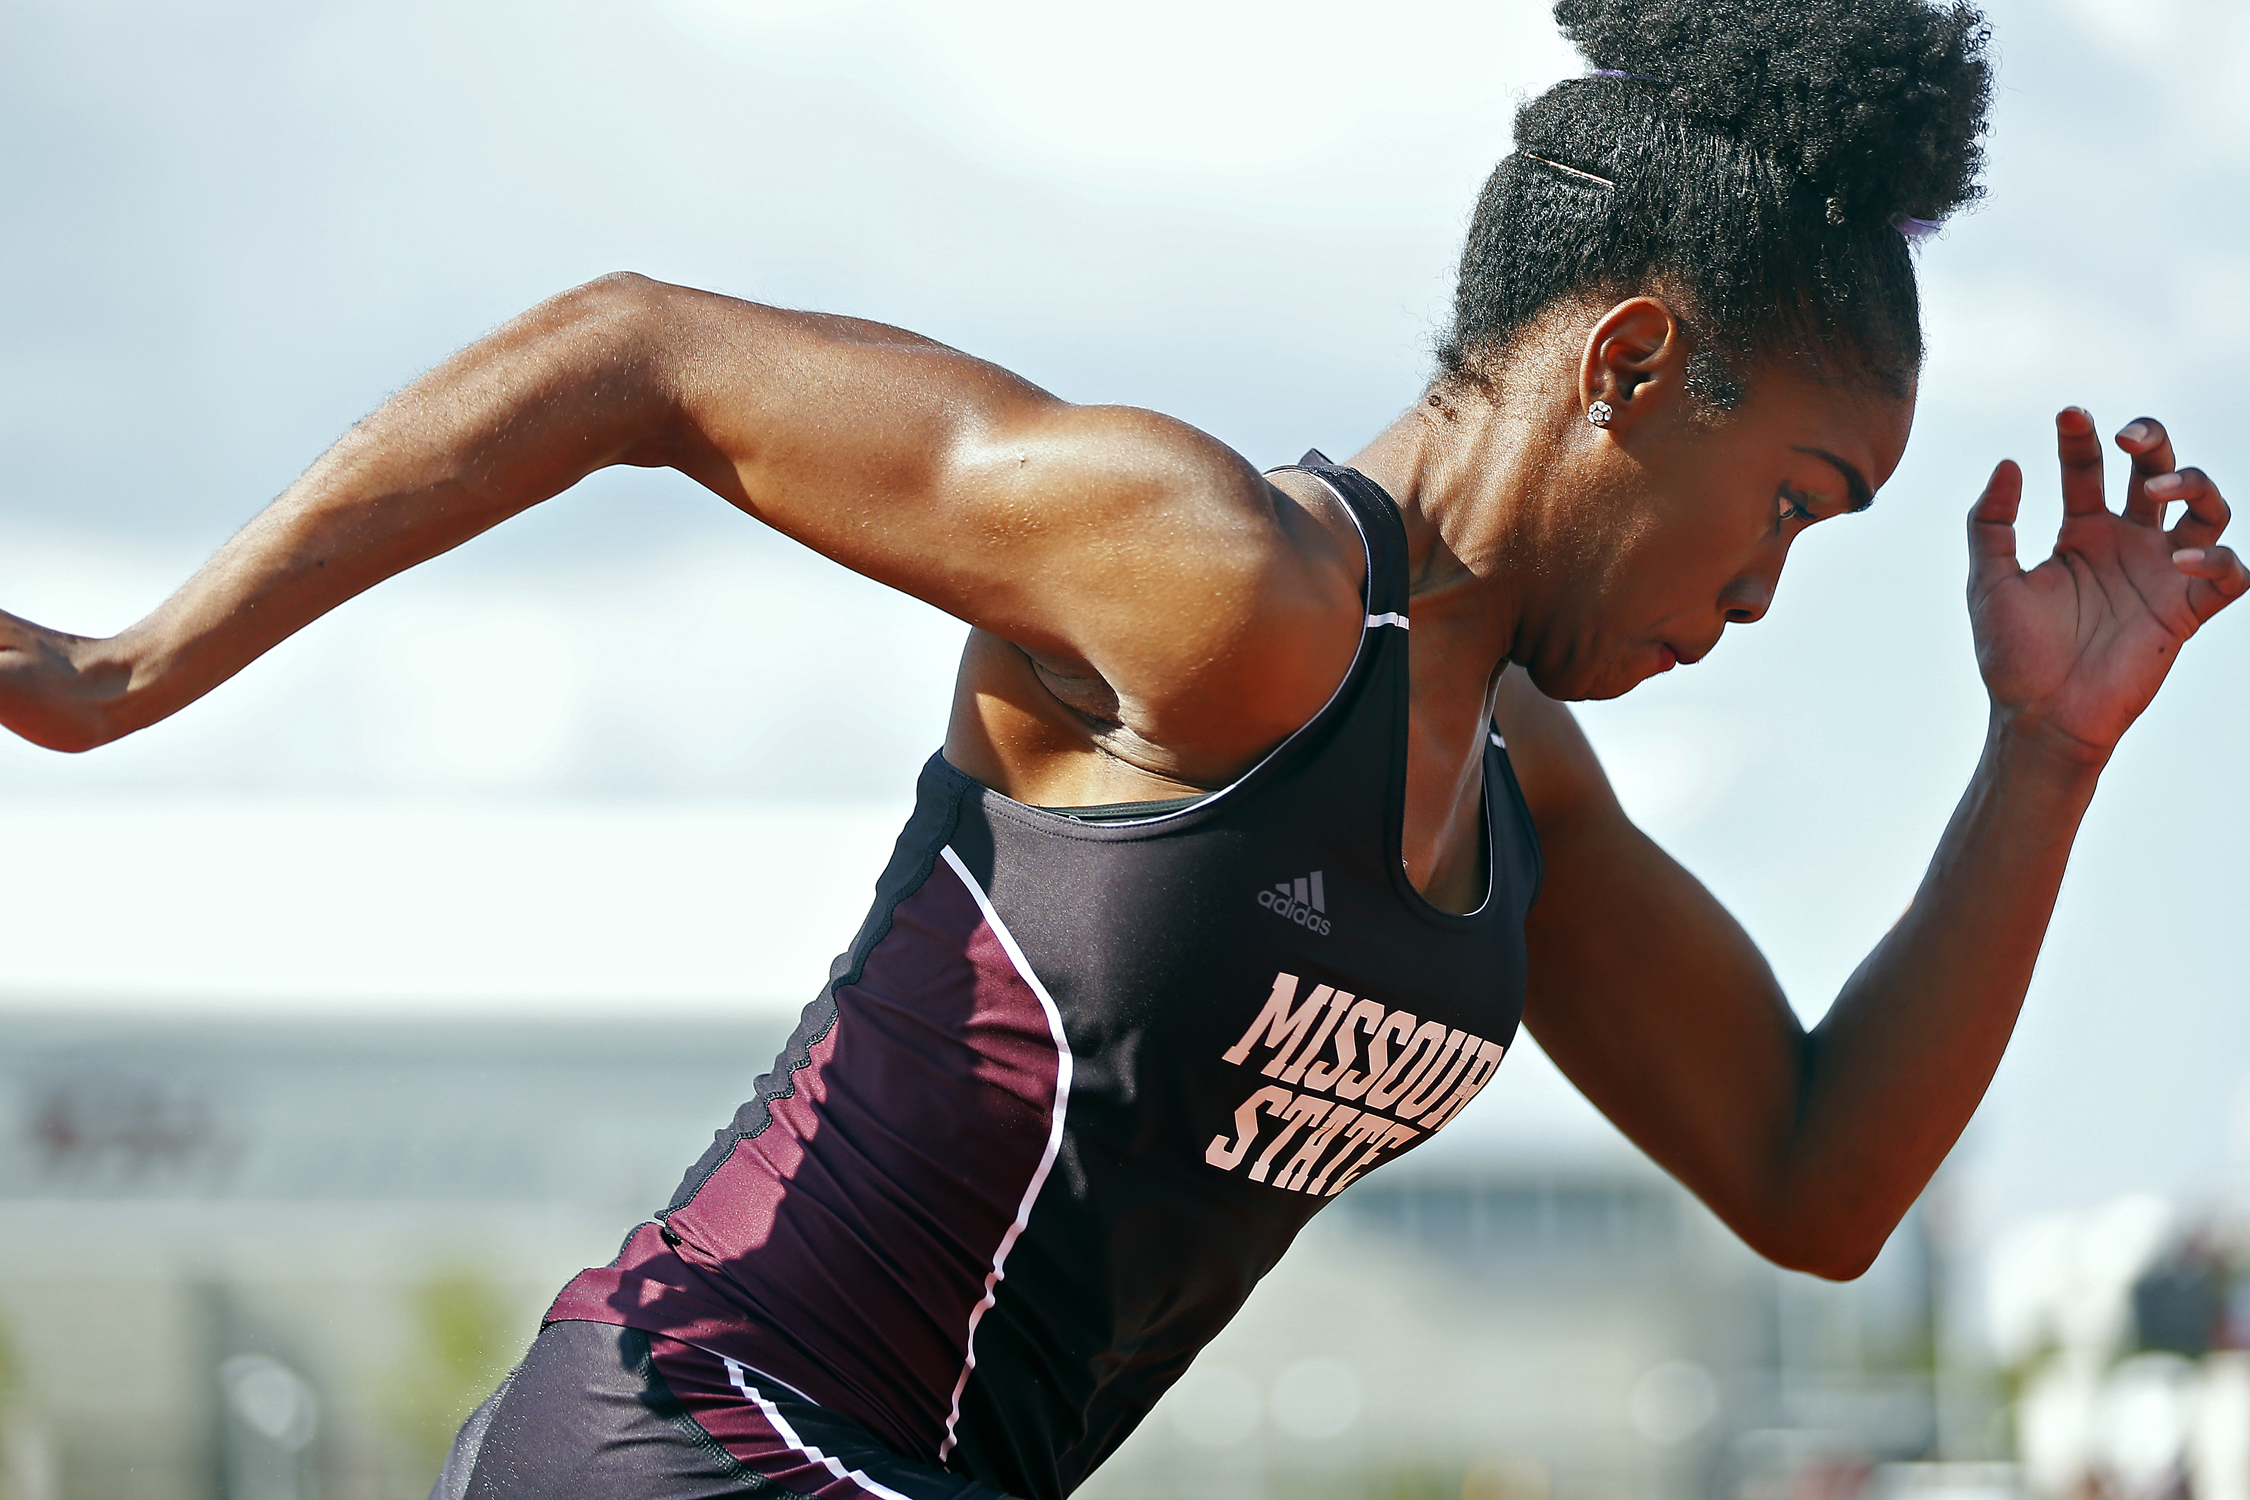 Missouri State Bears jumper Robiann Broomfield competes in the long jump event during the Missouri State Invitational track meet held at Betty and Bobby Allison South Stadium in Springfield, Mo. on April 22, 2016. Broomfield finished in first place for the event, having jumped 5.92 meters.